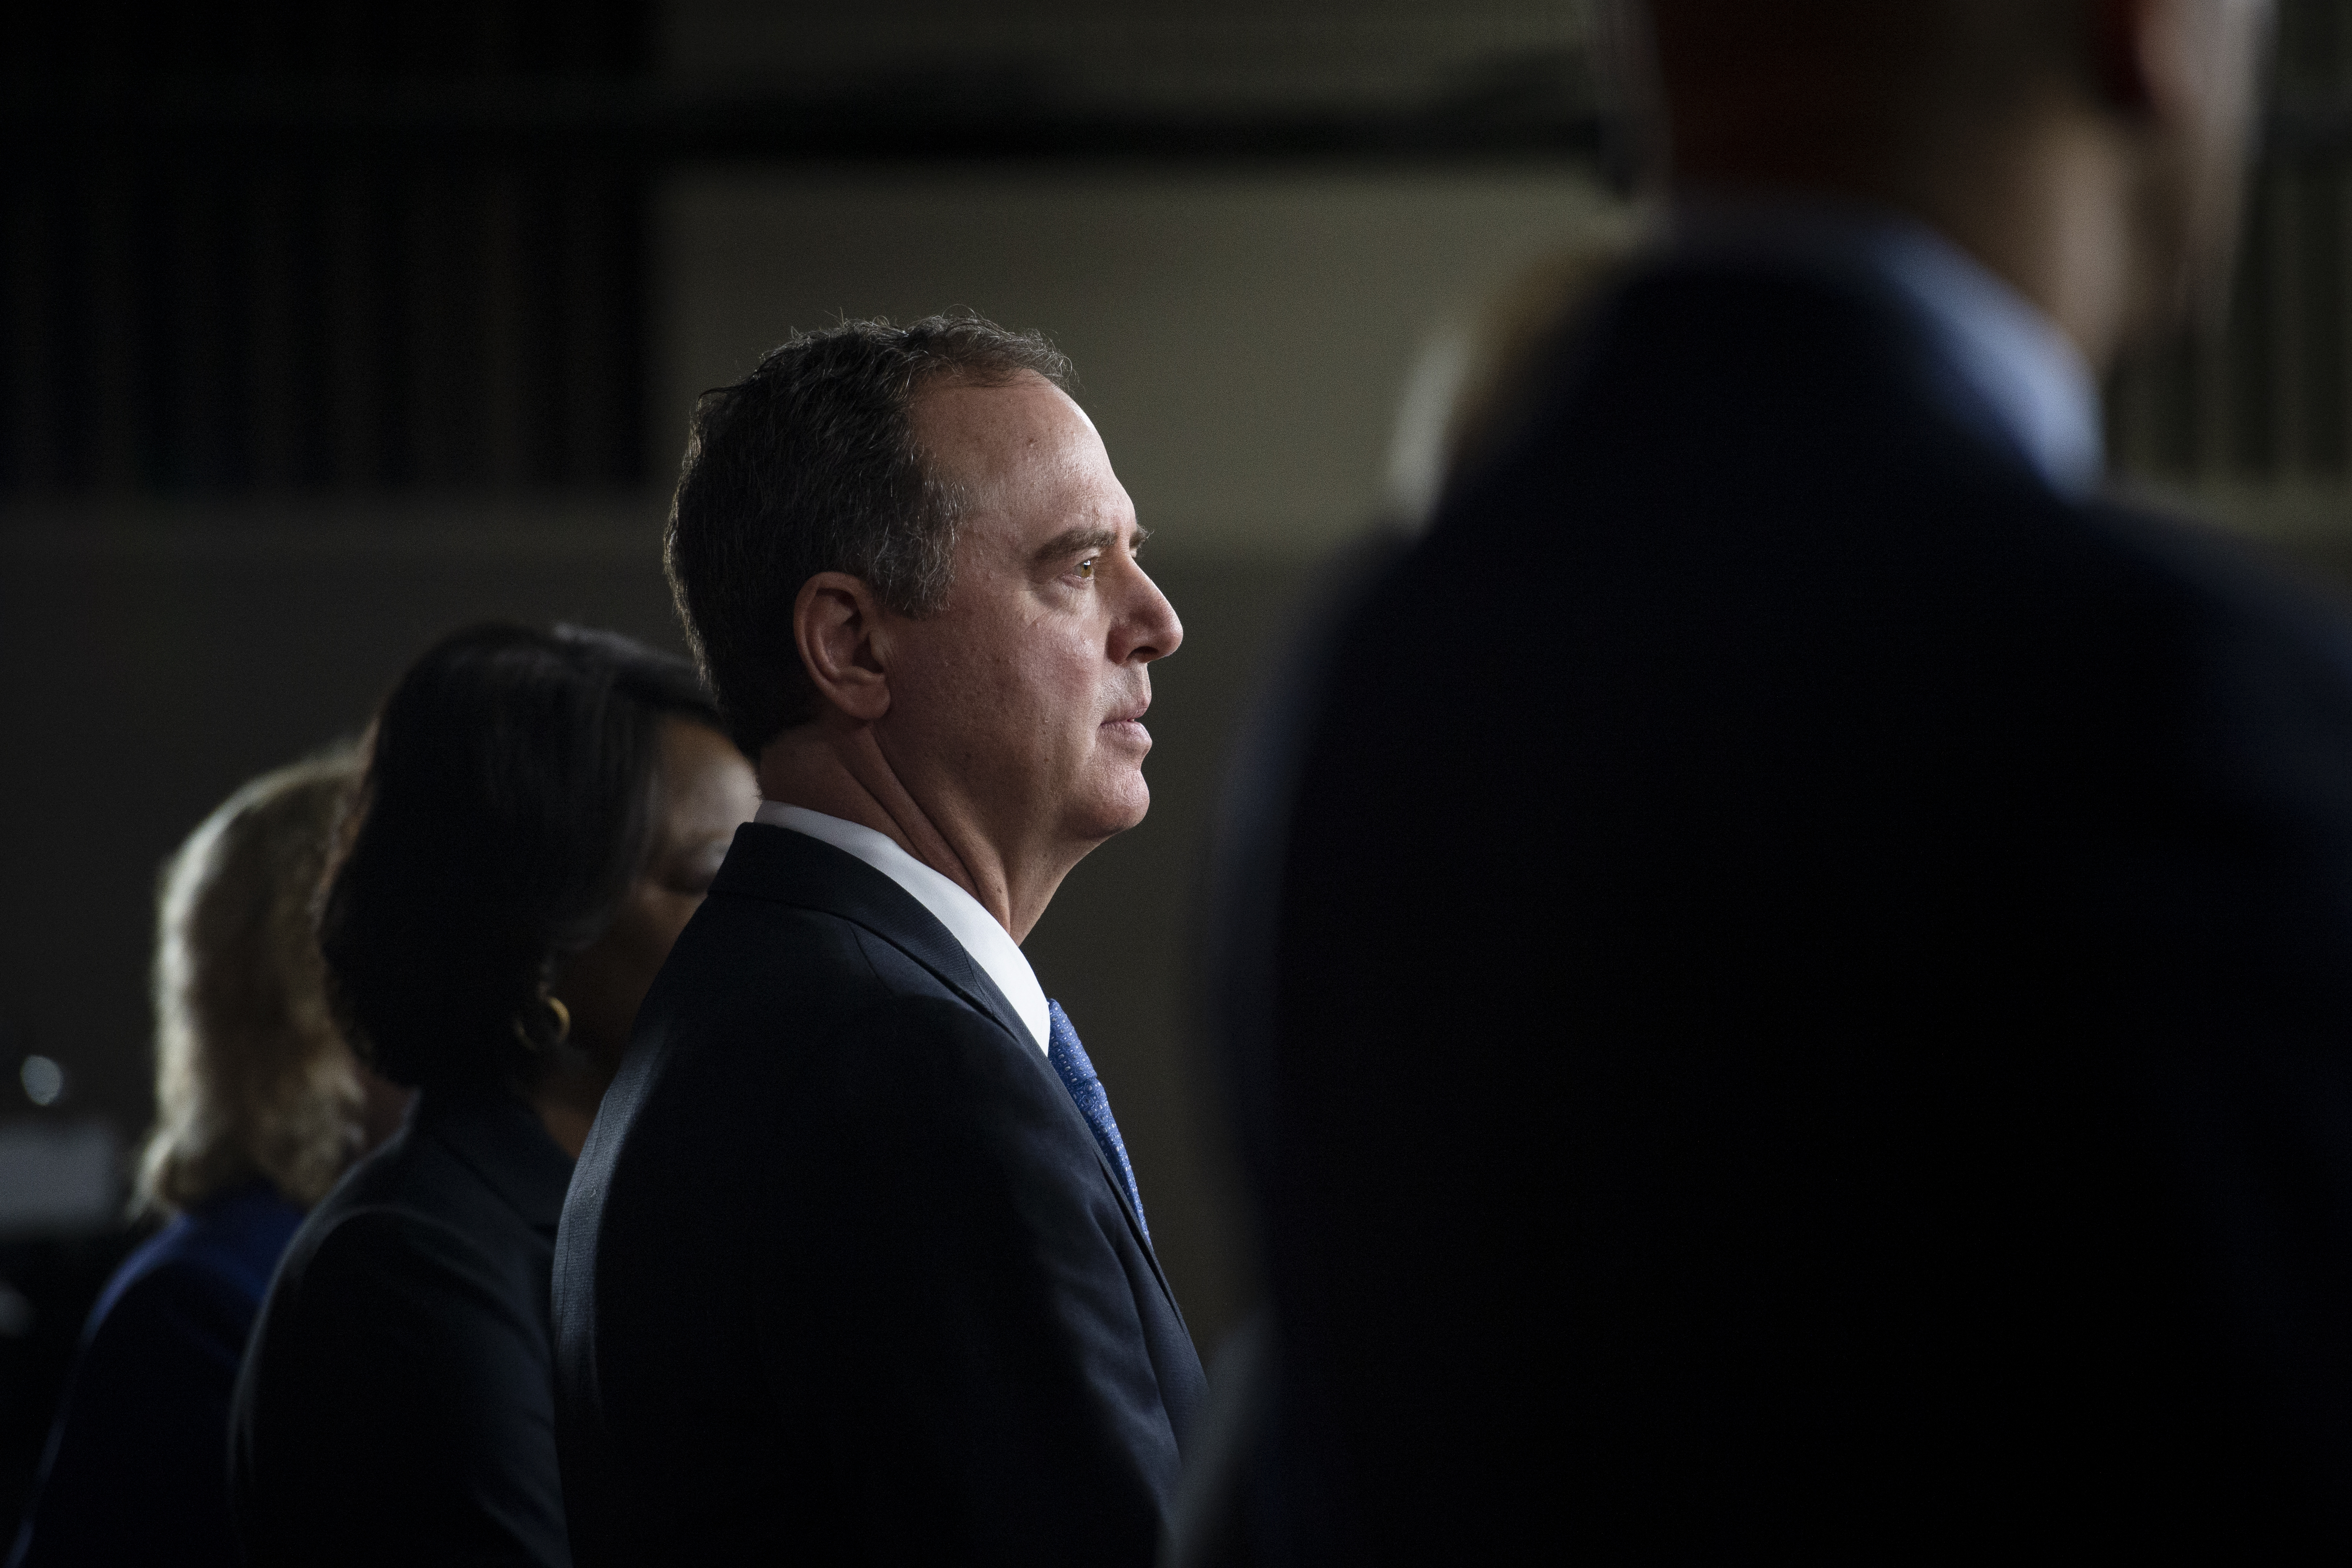 UNITED STATES - JANUARY 15: Rep. Adam Schiff, D-Calif., Chairman of the House Intelligence Committee, listens as Speaker of the House Nancy Pelosi, D-Calif., speaks during a news conference to announce impeachment managers on Capitol Hill on Wednesday, Jan. 15, 2020. (Photo by Caroline Brehman/CQ Roll Call)